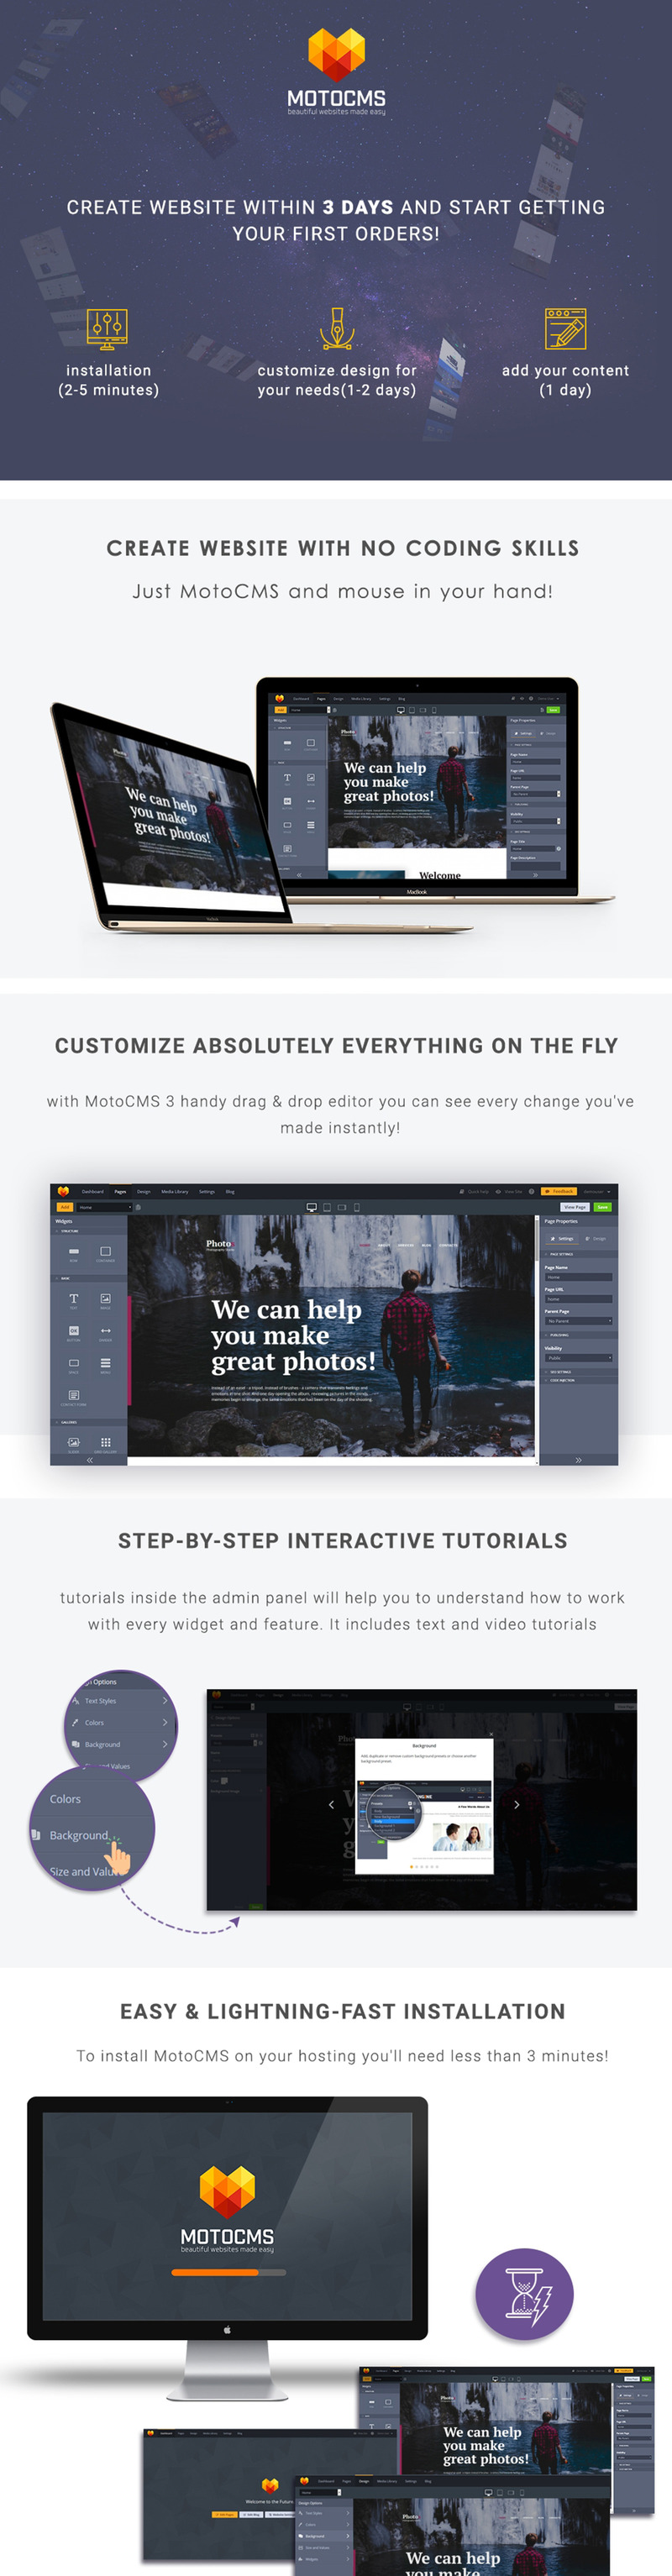 Photography Studio Photo Gallery Template - Features Image 1